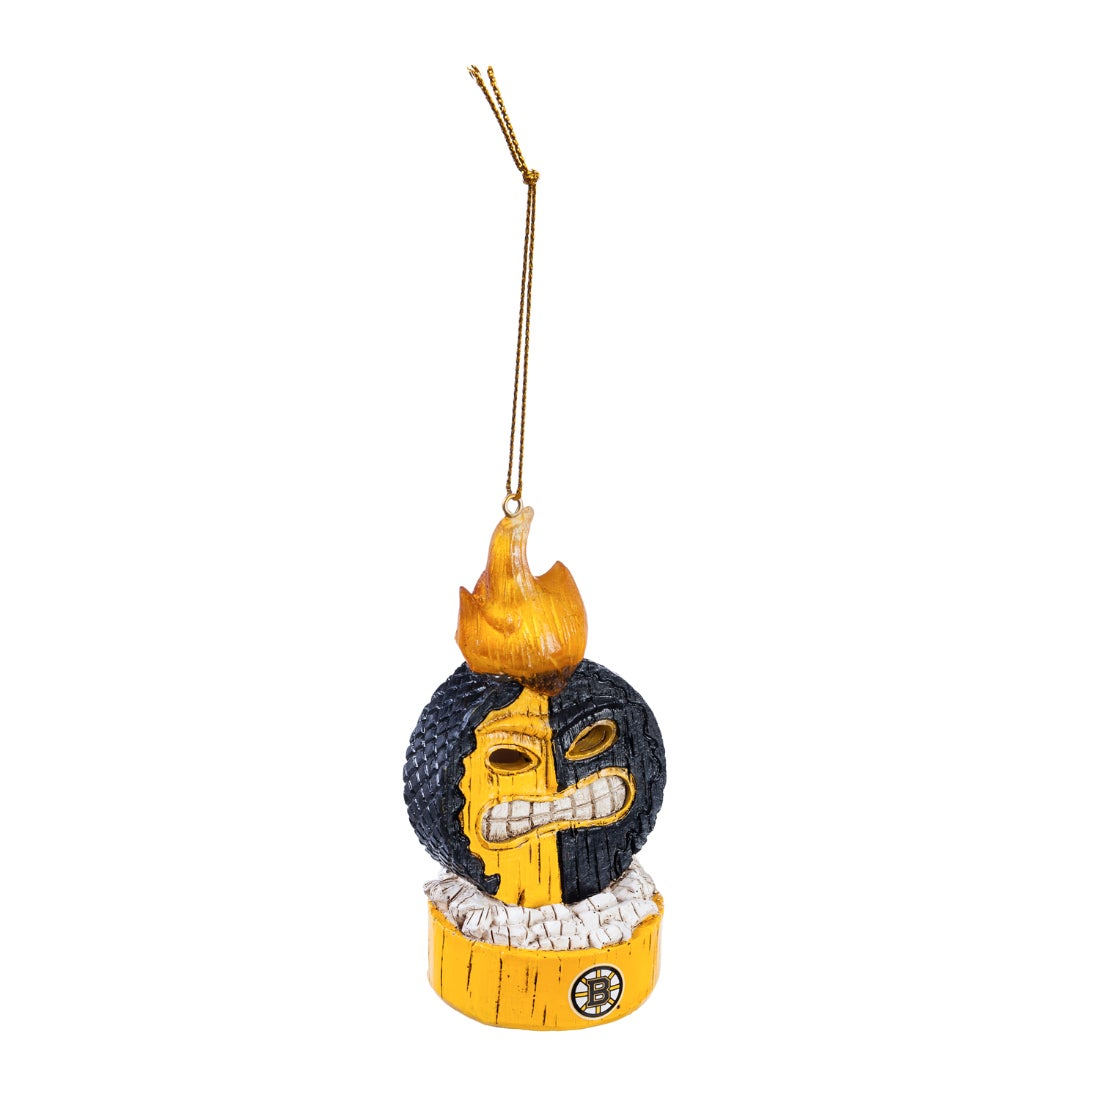 Boston Bruins Lit Team Ball Ornament